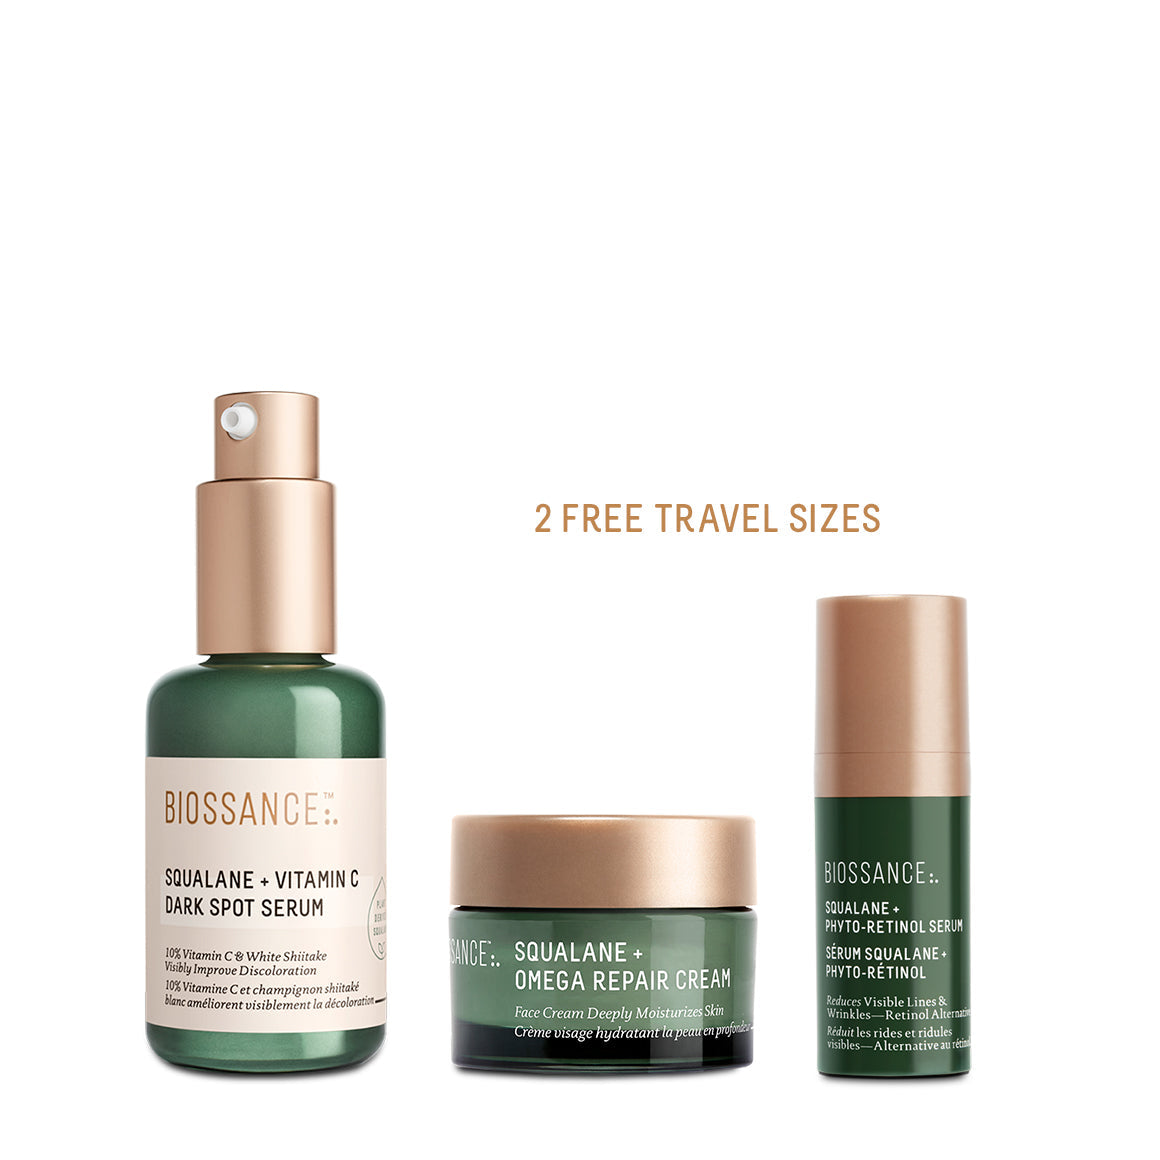 Spot Fading + Age Fighting Serum Trio